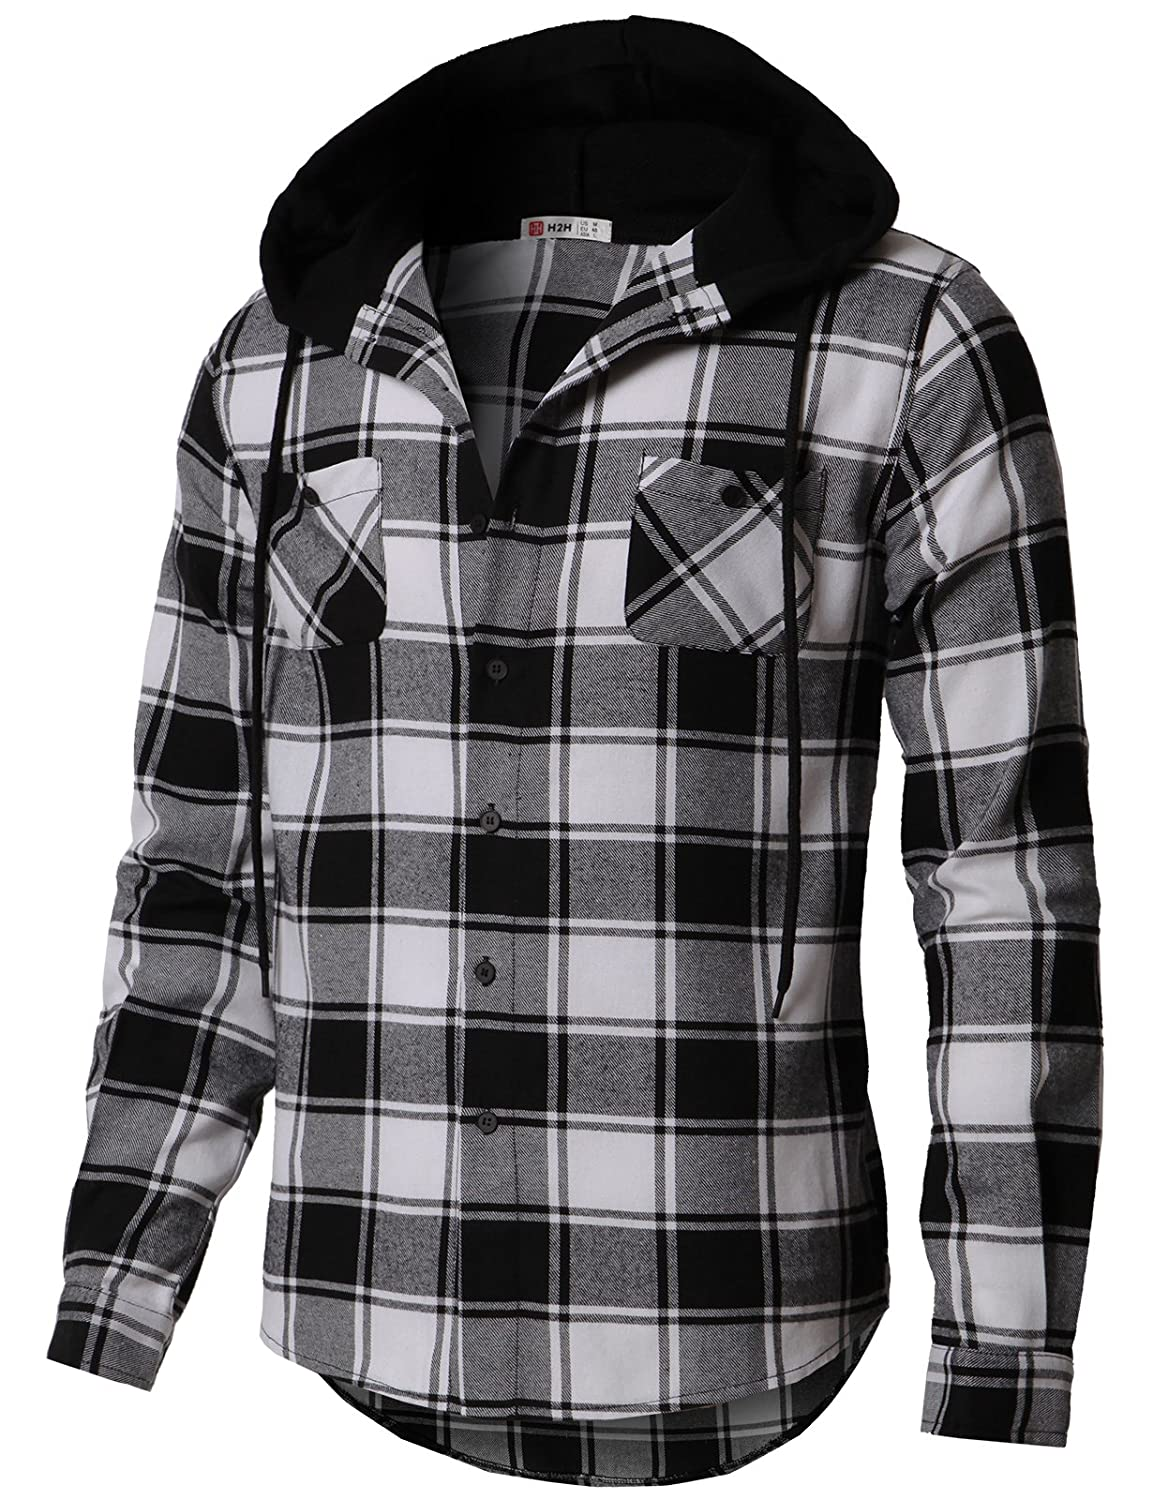 cd9c32ac5 H2H Mens Casual Hoodie Jackets Check Patterned Long Sleeve with Front  Pockets at Amazon Men's Clothing store: